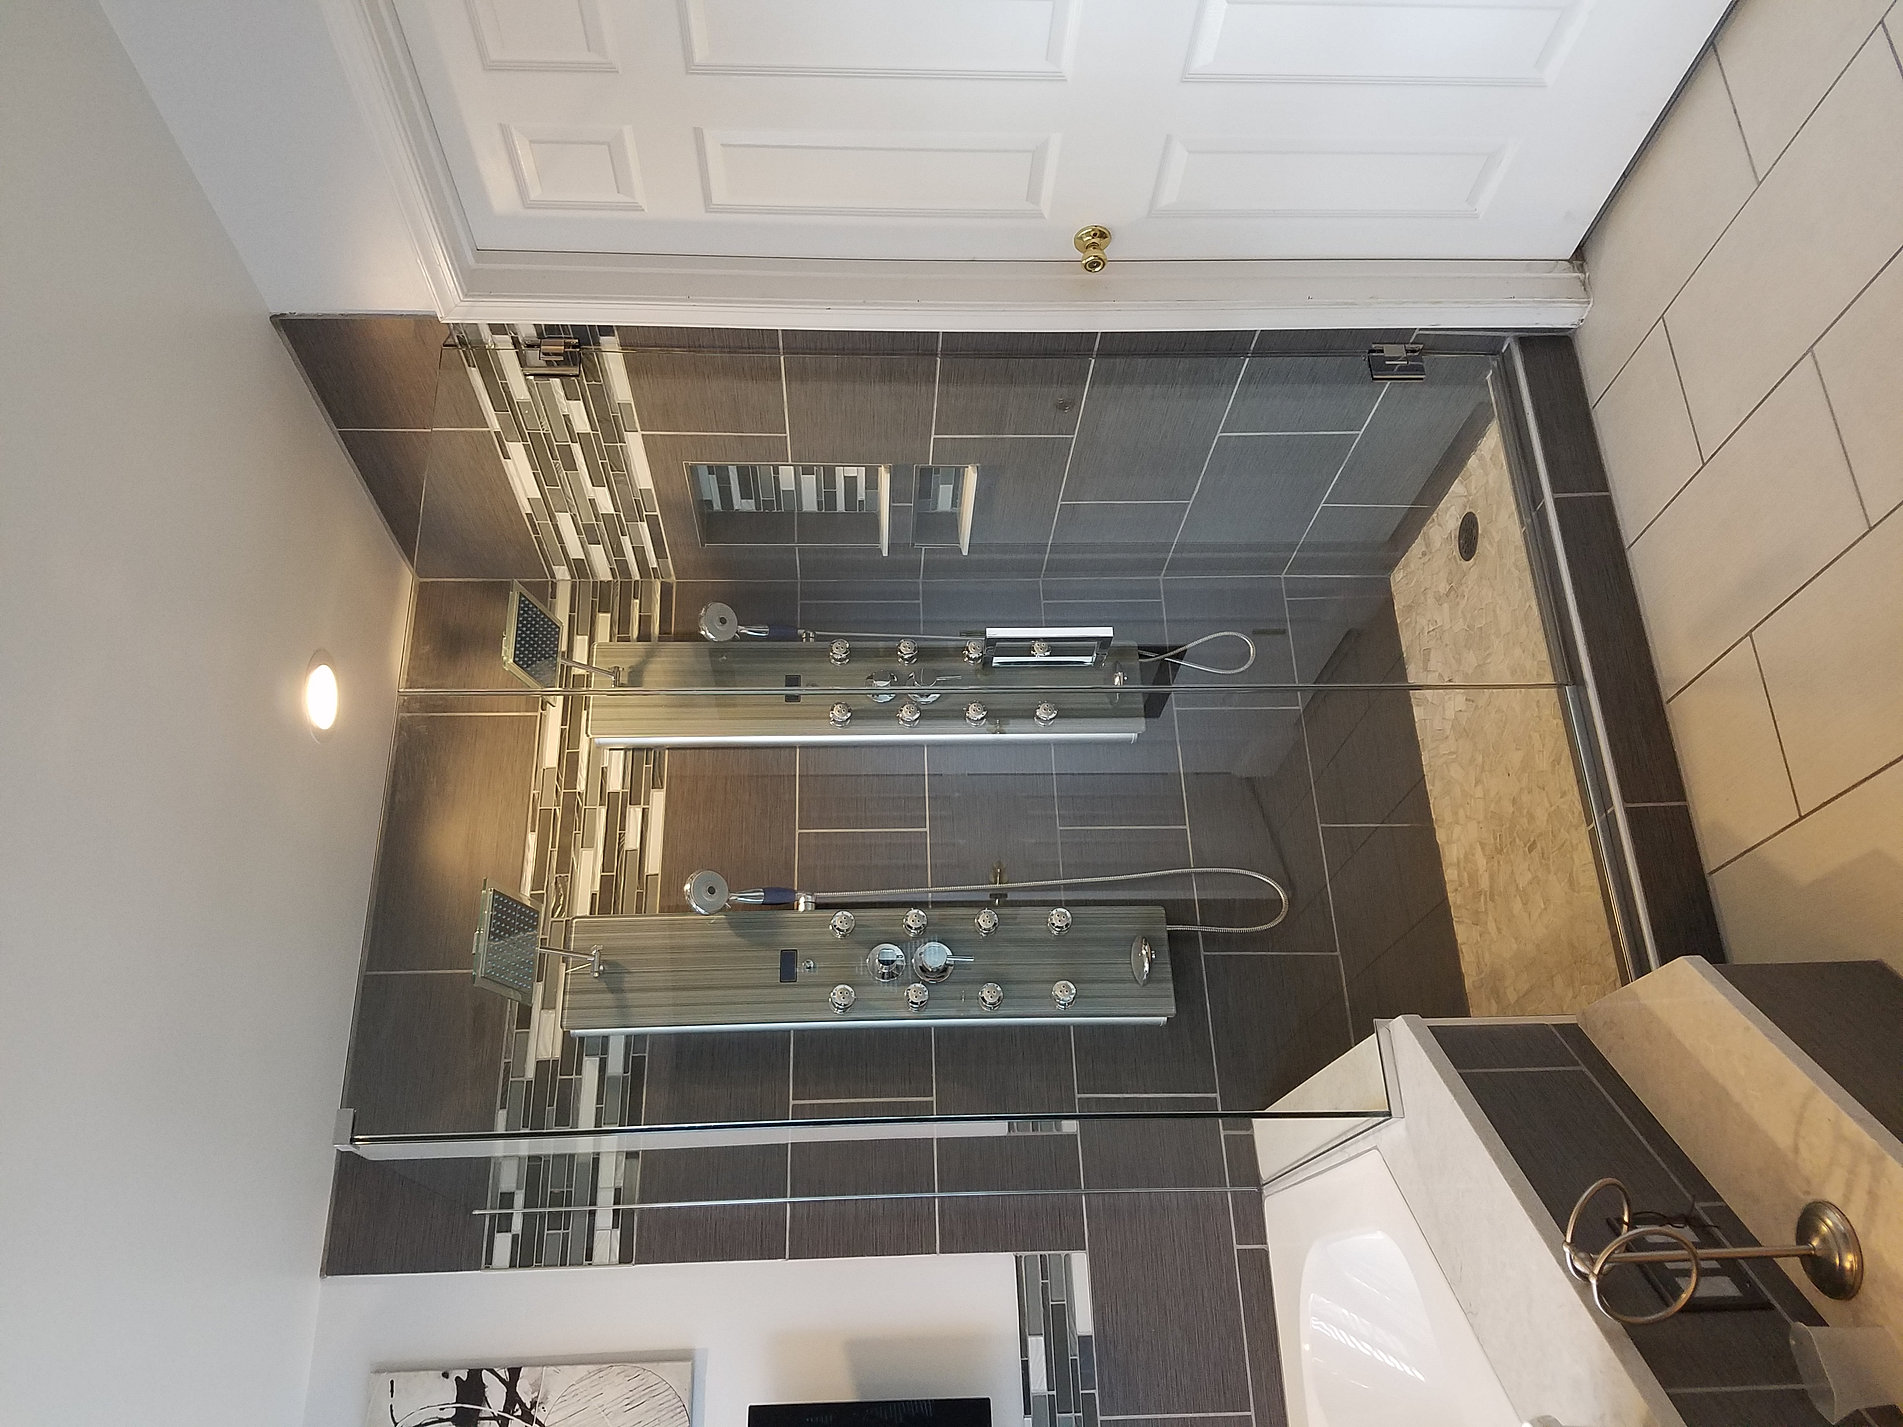 Bathroom Partitions Kent Washington glass shower enclosures | frederick, md | noble shower doors